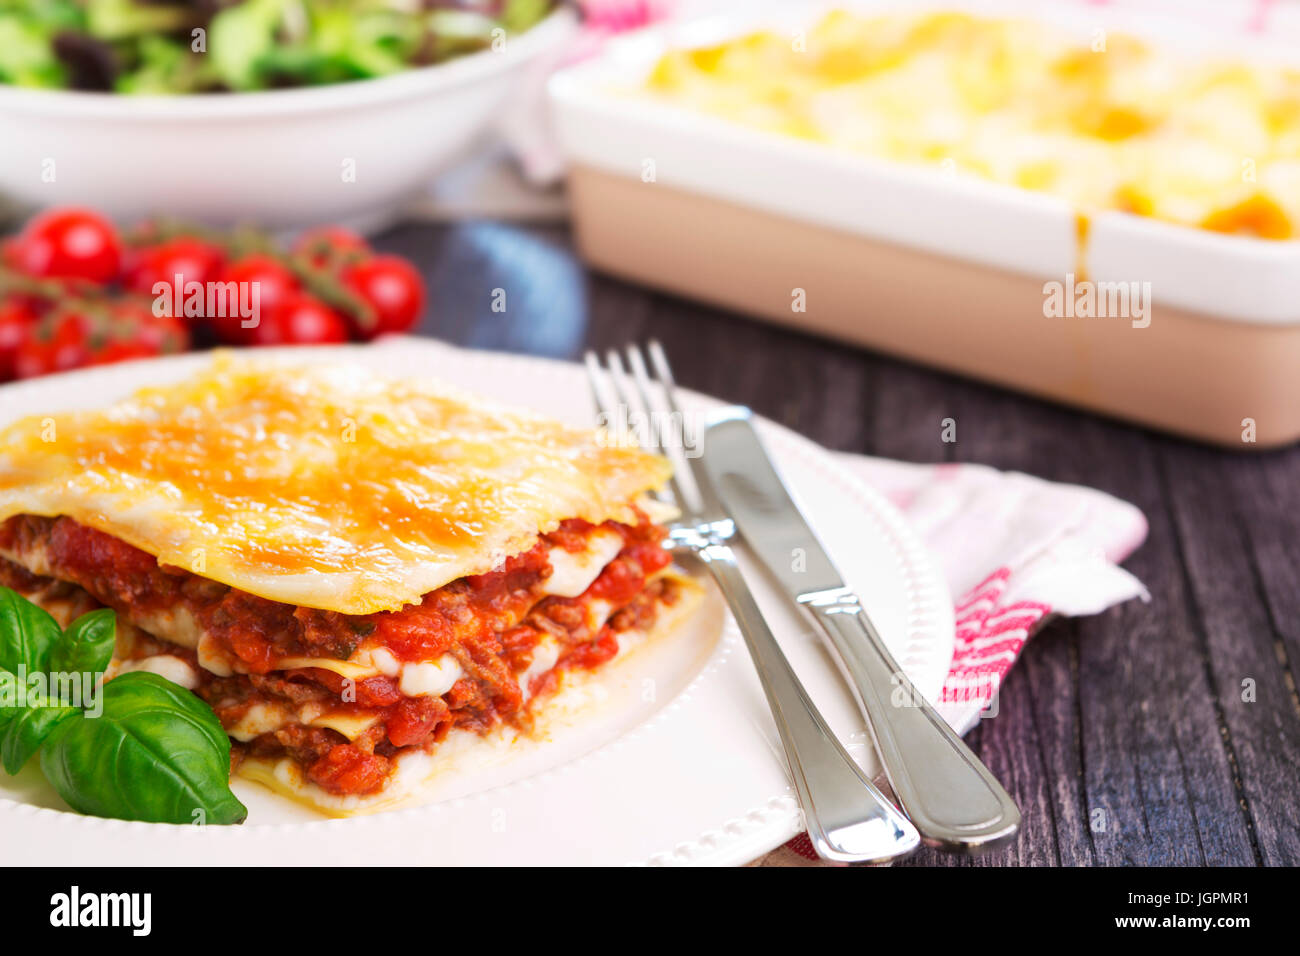 A portion of homemade lasagna on a plate on a brightly lit table. - Stock Image